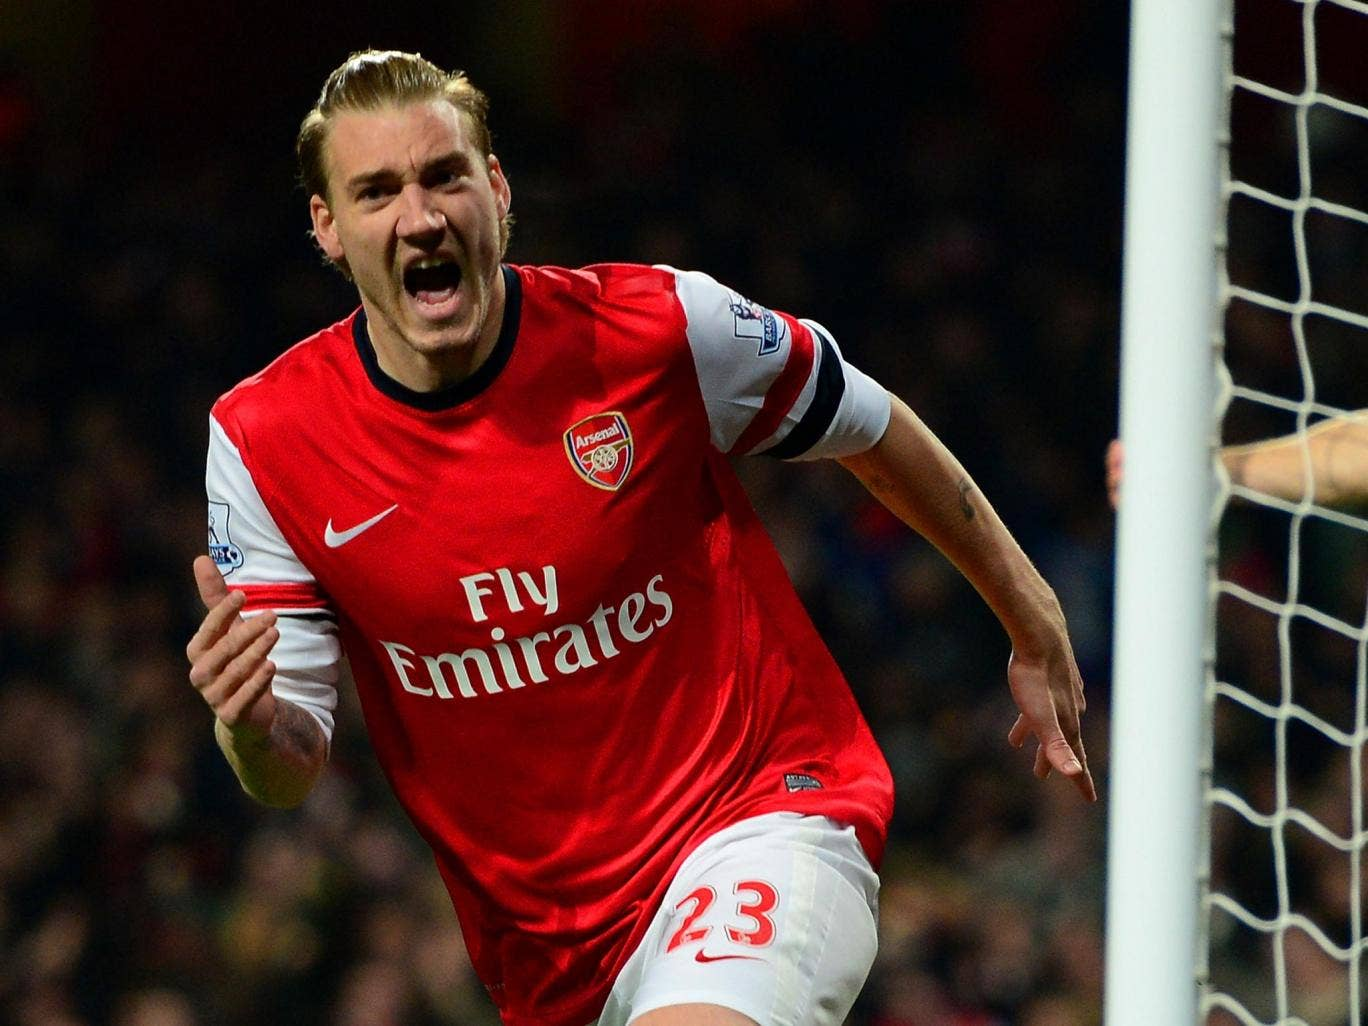 Nicklas Bendtner has admitted that he is unhappy with his lack of playing time at Arsenal having played just 82 minutes of Premier League football this season